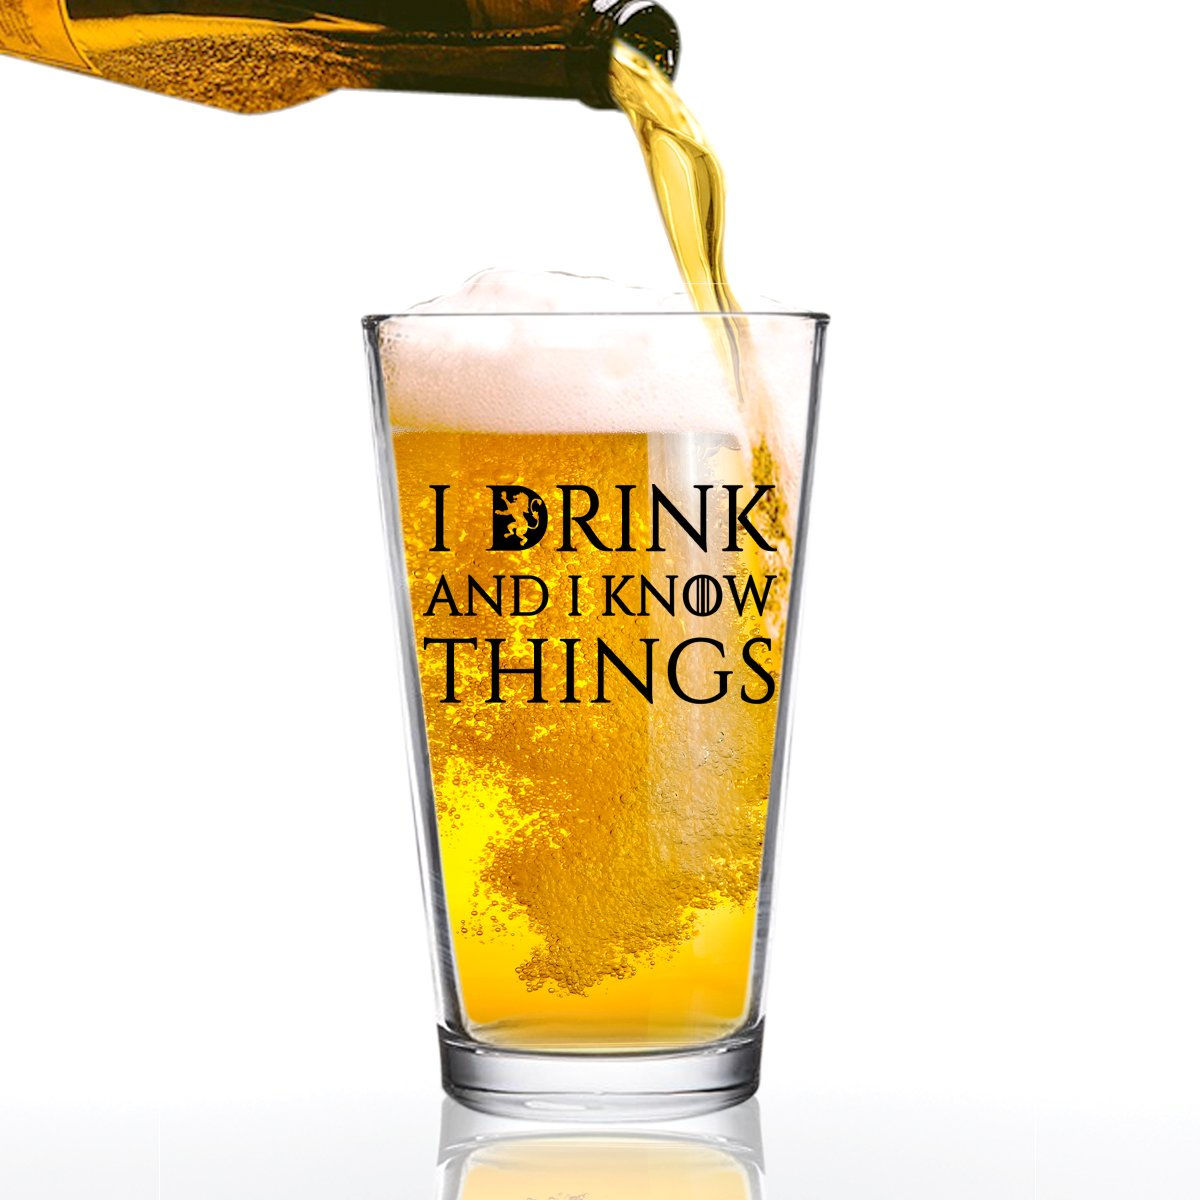 I Drink and I Know Things Beer Glass - 16 oz - Funny Novelty Beer Glass - Humorous Present for Dad, Men, Friends, or Him- Made in USA - Inspired by Game of Thrones